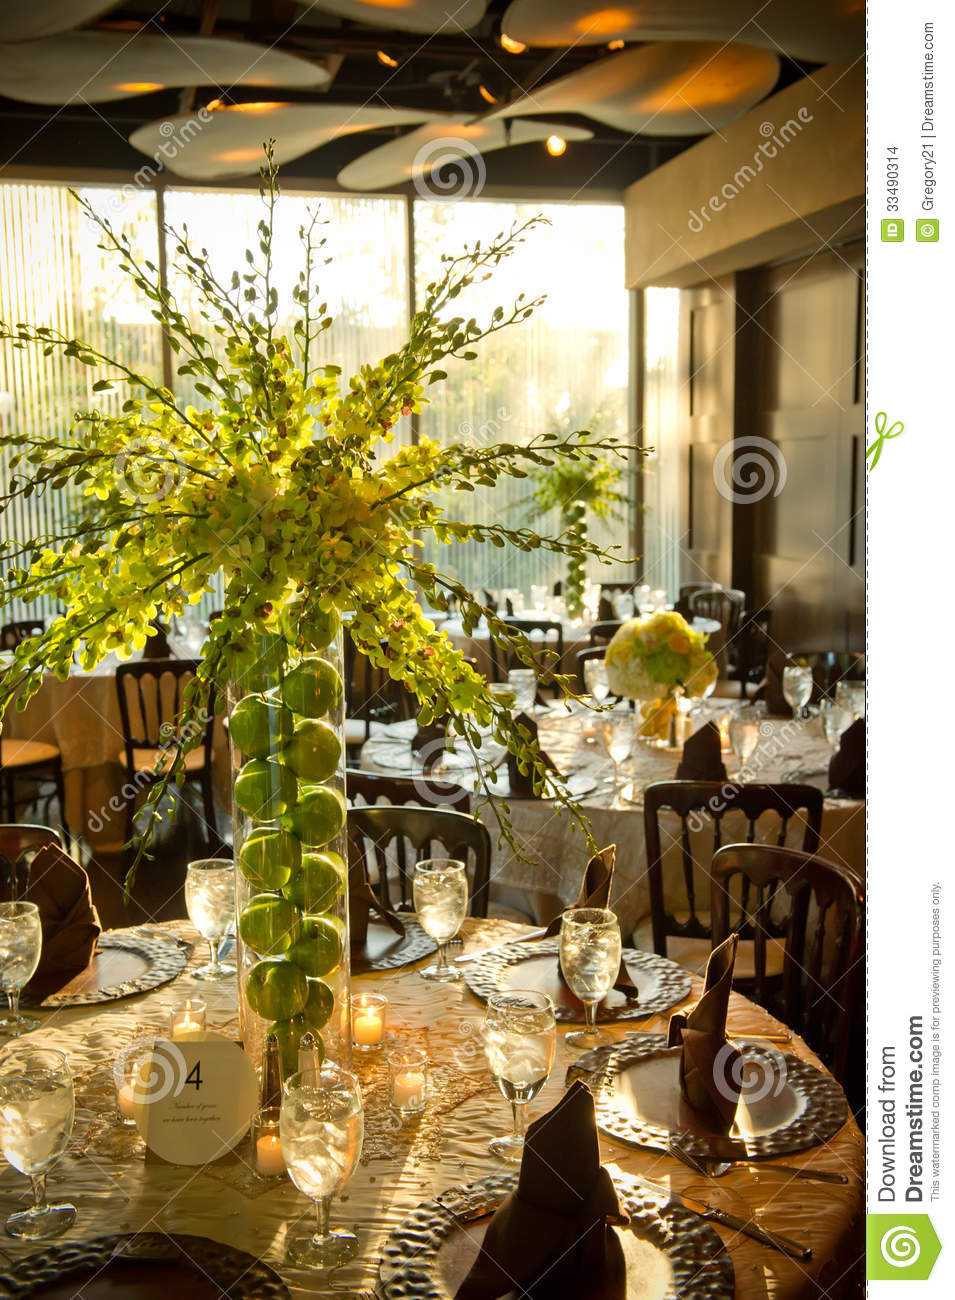 Beautifully decorated wedding venue stock images image for Pictures of wedding venues decorated